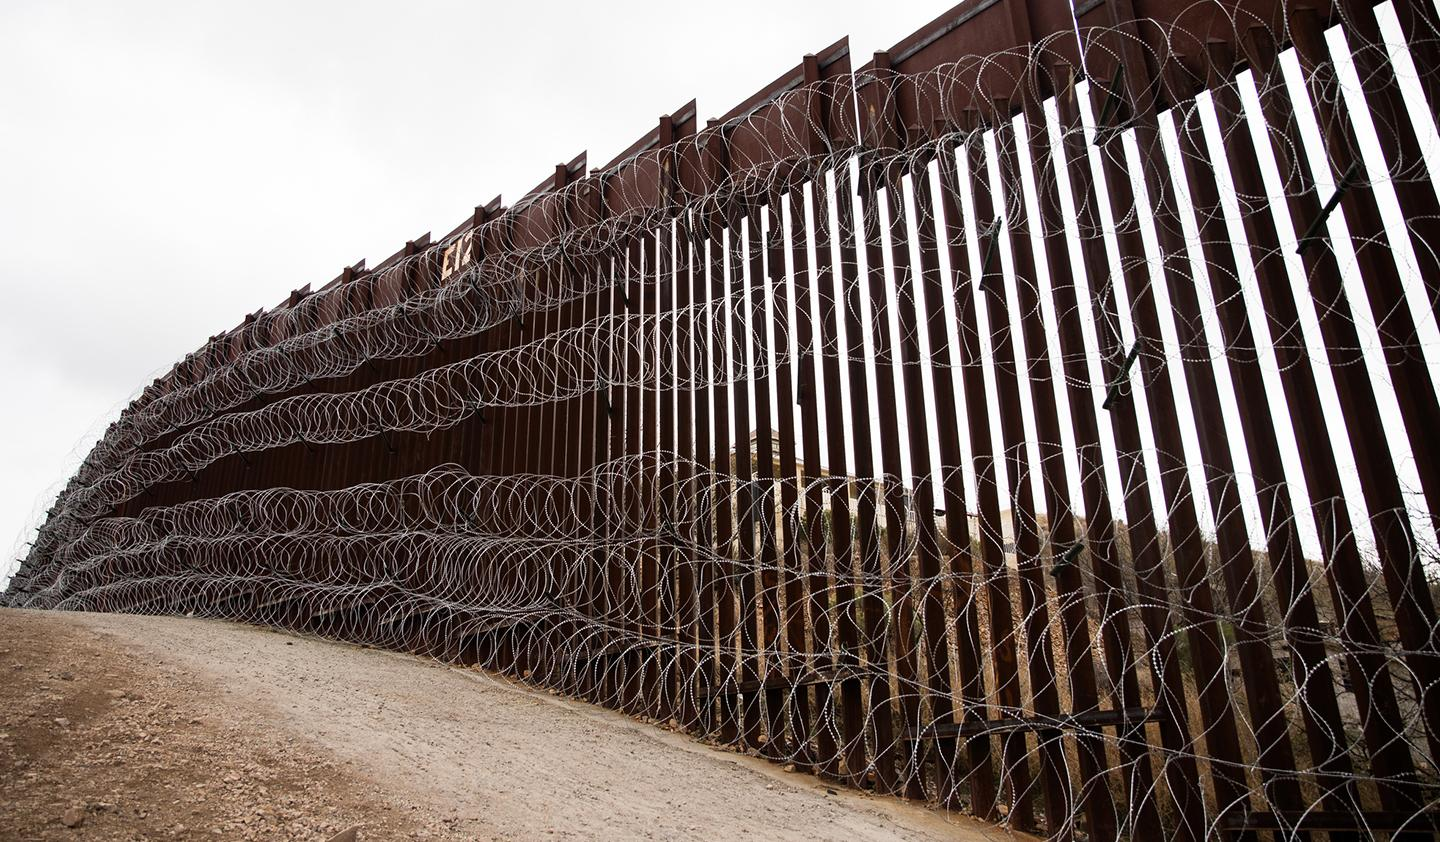 Layers of Concertina are added to existing barrier infrastructure along the U.S. - Mexico border near Nogales, AZ, February 4, 2019. Photo: Robert Bushell